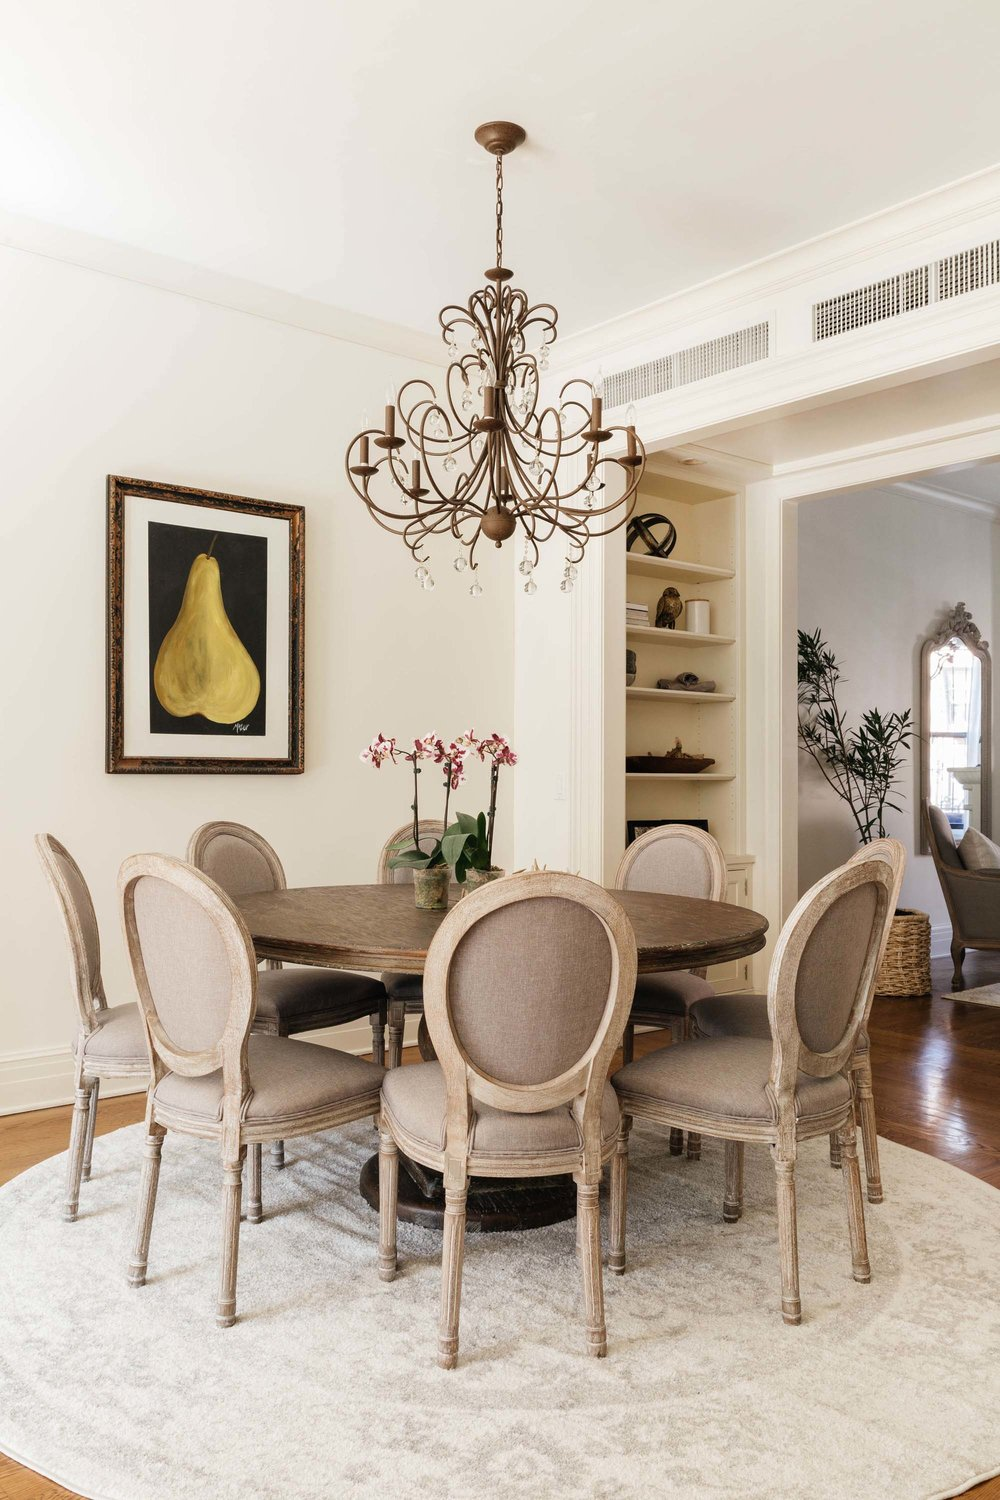 Round breakfast table with chandelier hanging overhead